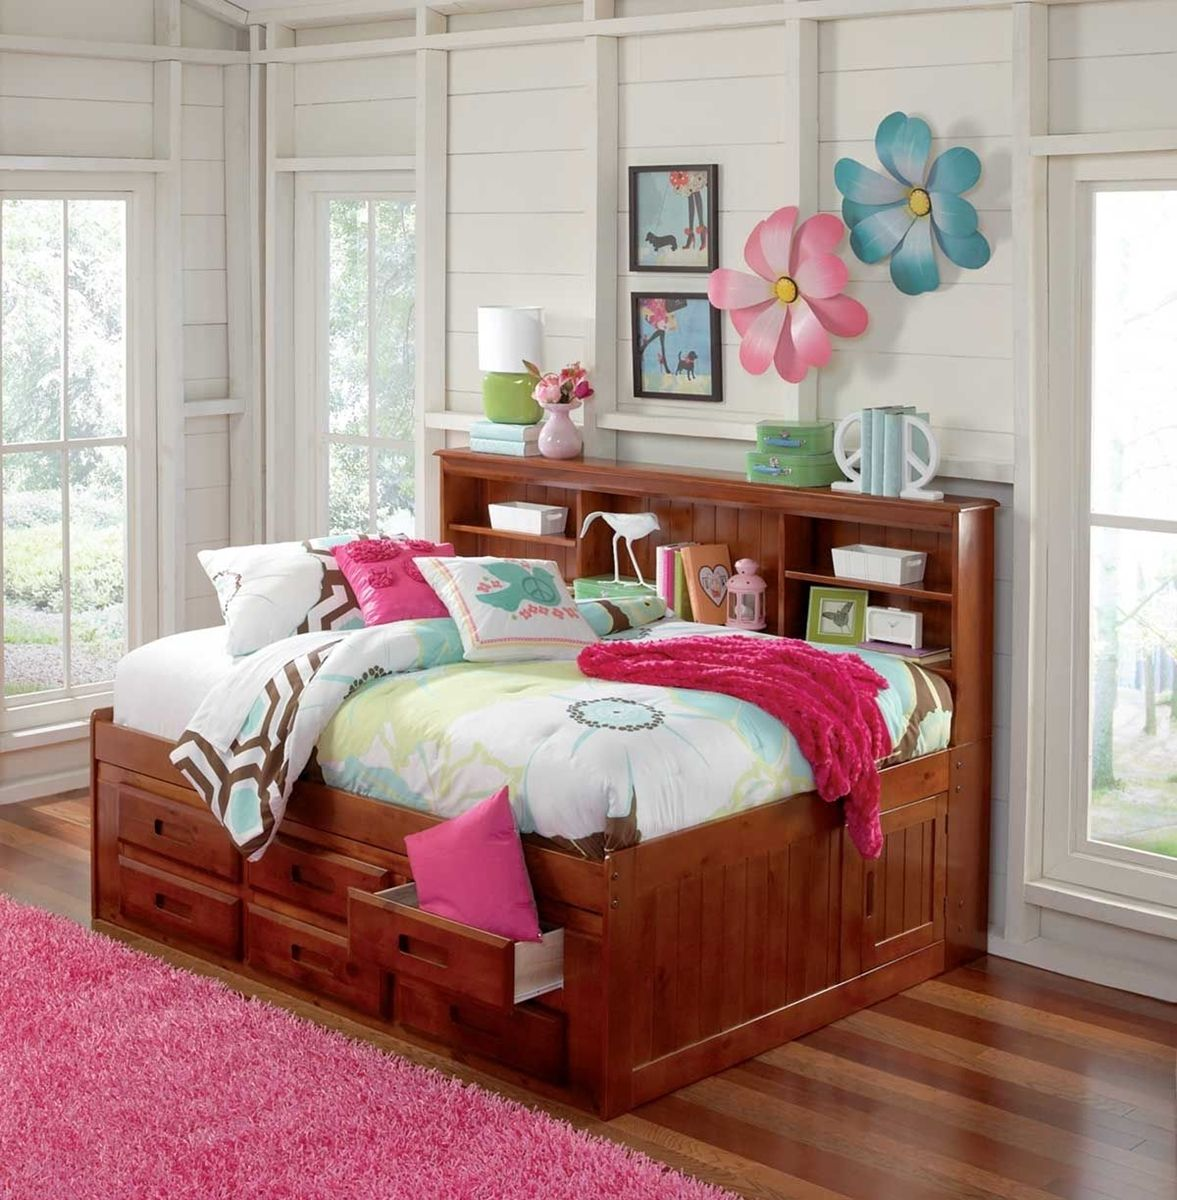 Forrester Twin Bookcase Storage Bed Daybed with storage